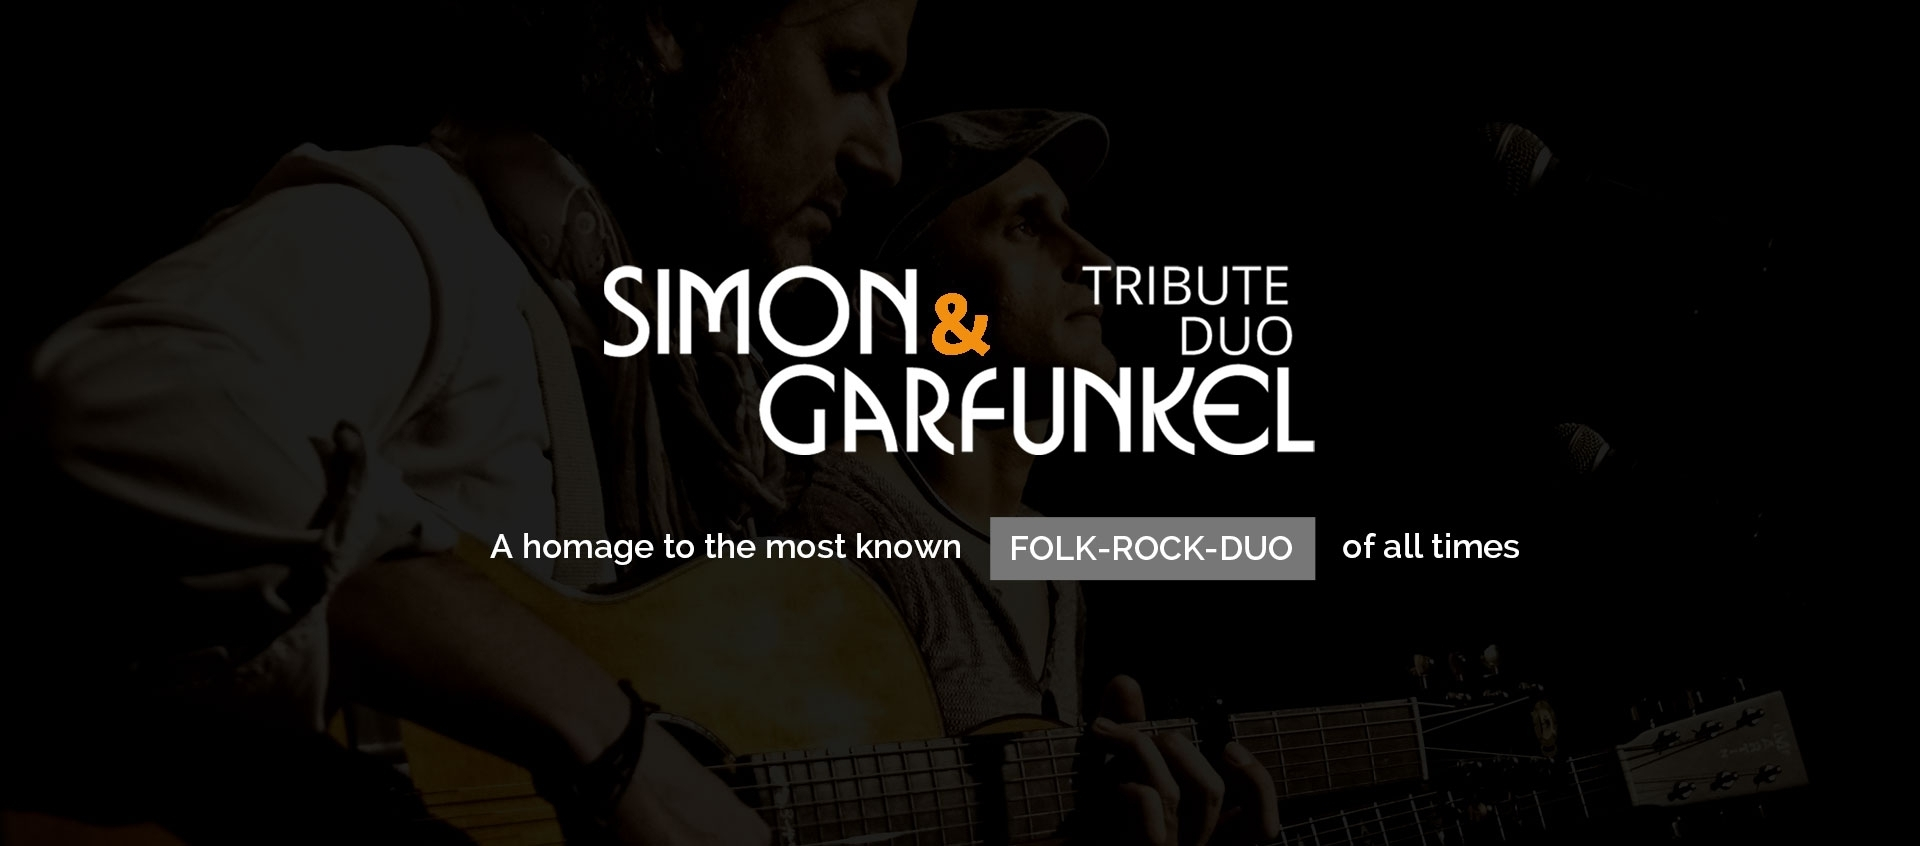 Simon & Garfunkel Tribute Duo - A homage to the most known Folk-Rock-Duo of all times